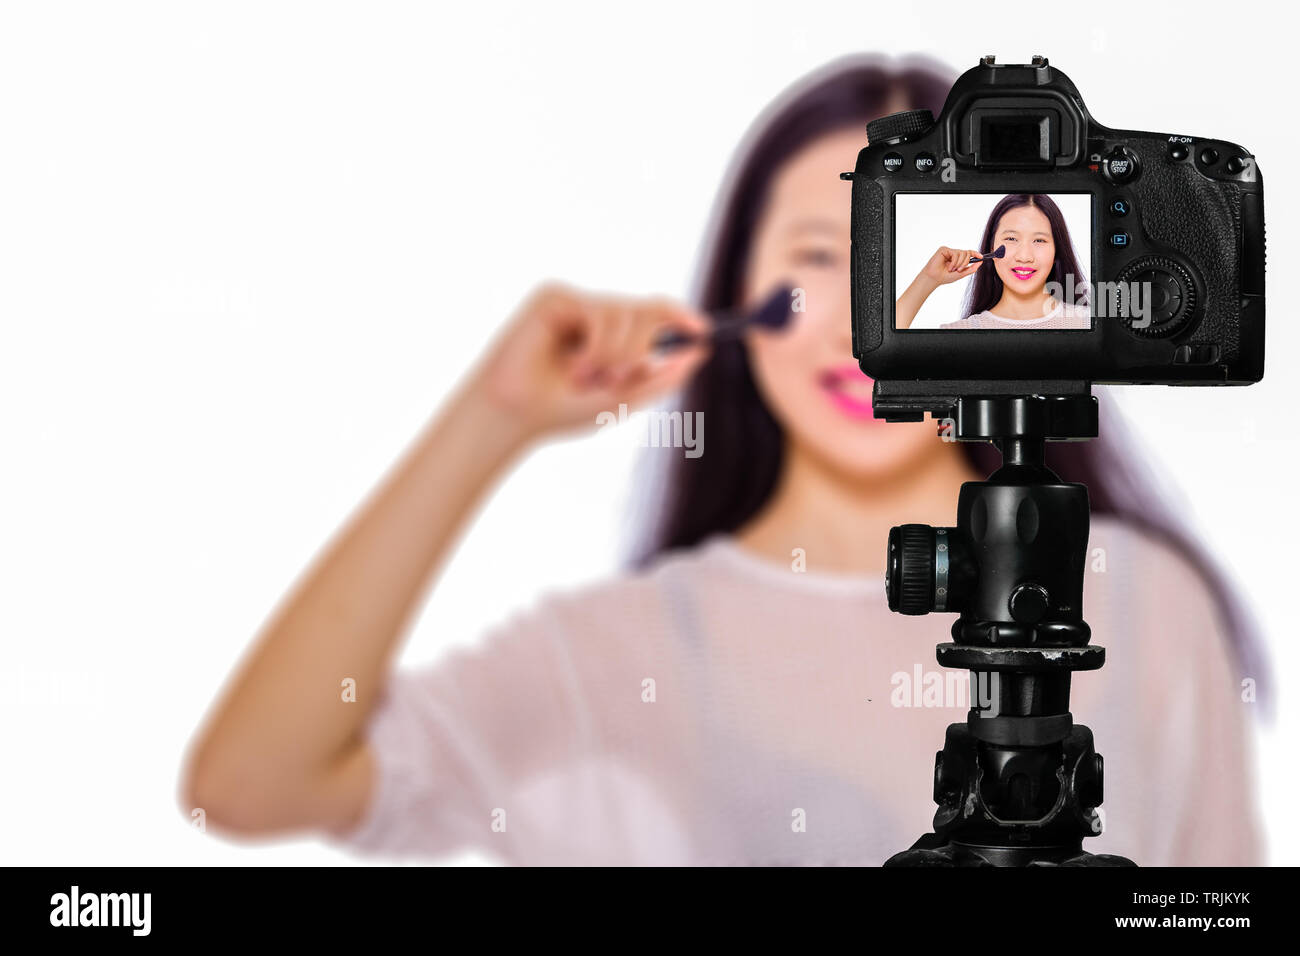 Focus on live view on camera on tripod, teenage girl  using cosmetics image on back screen with blurred scene in background. Teenage vlogger livestrea - Stock Image